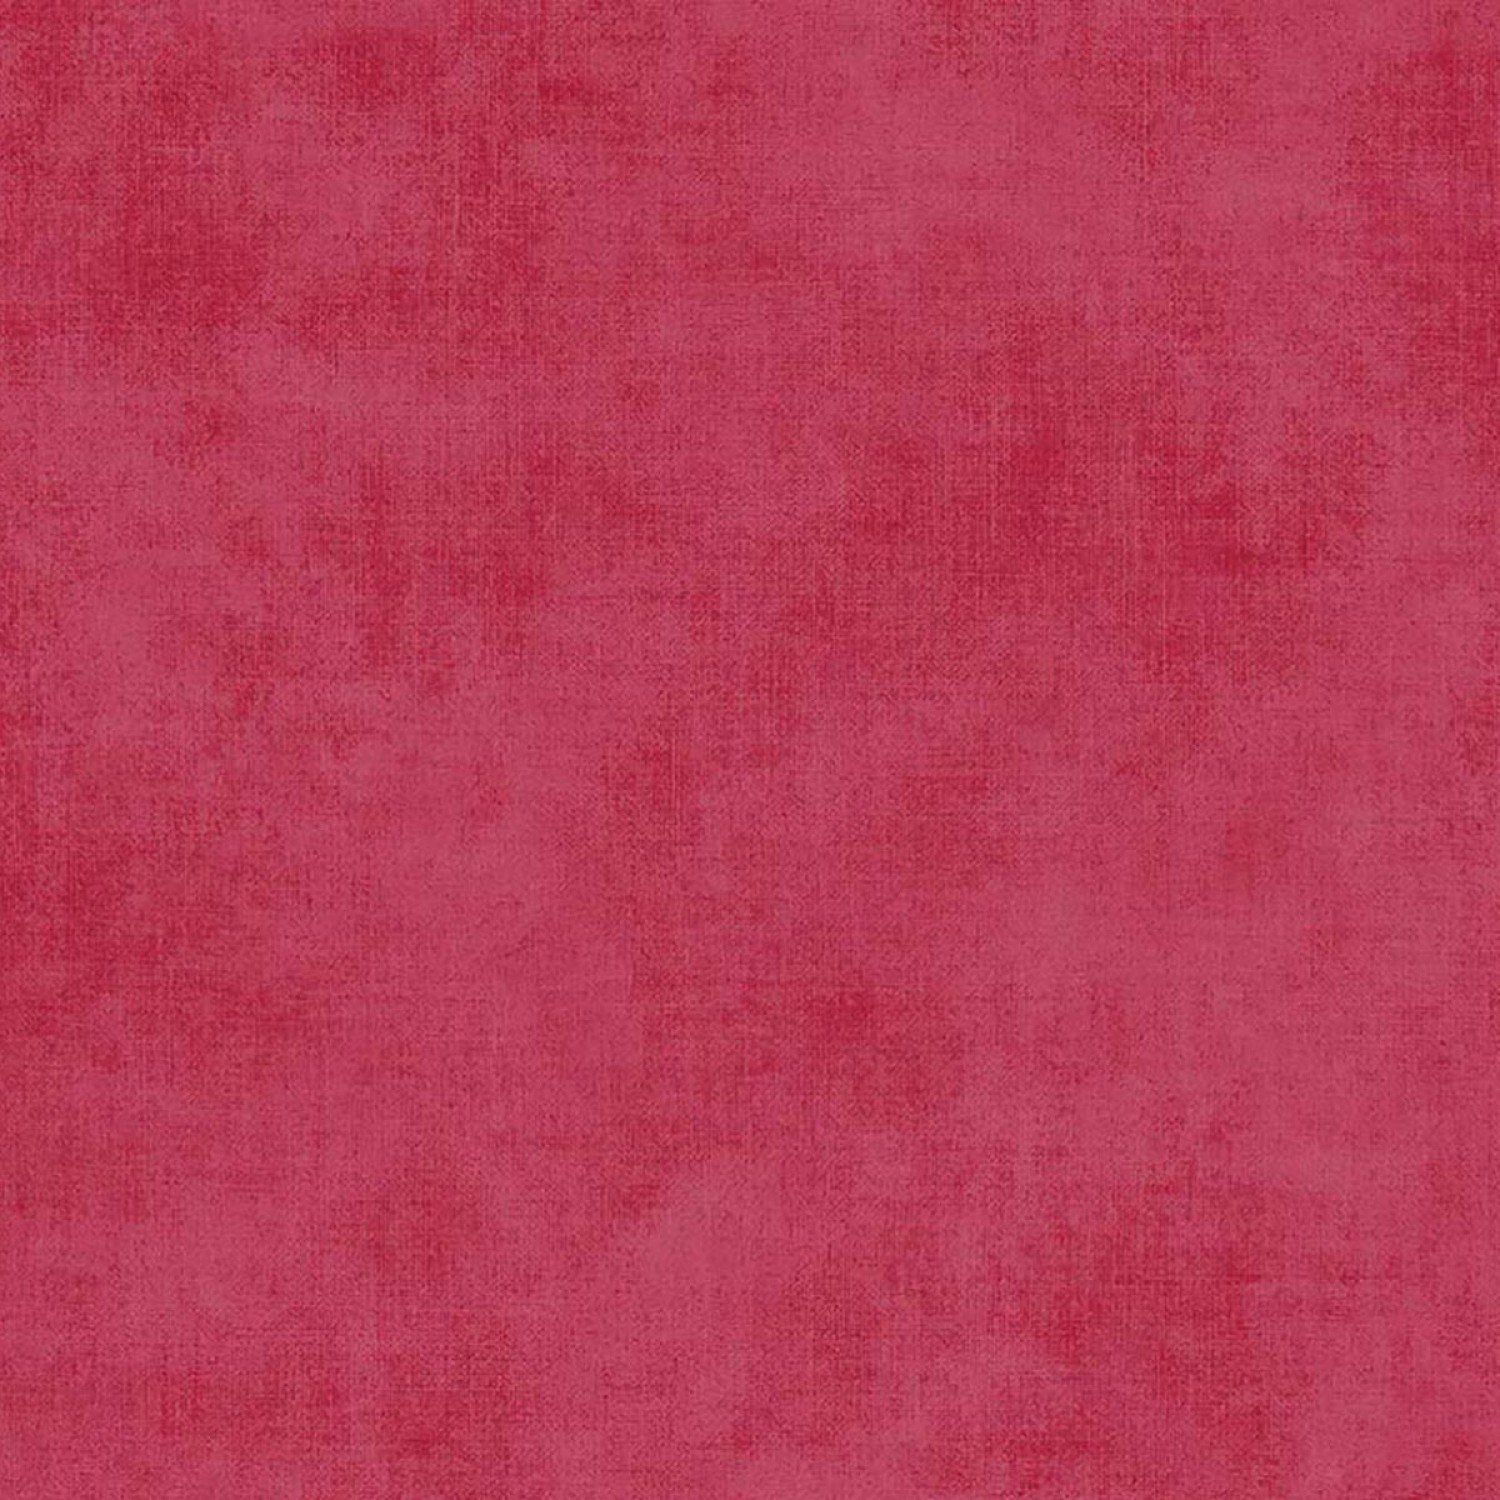 Wideback Shade, 107/108 Inches, Color Wagonred